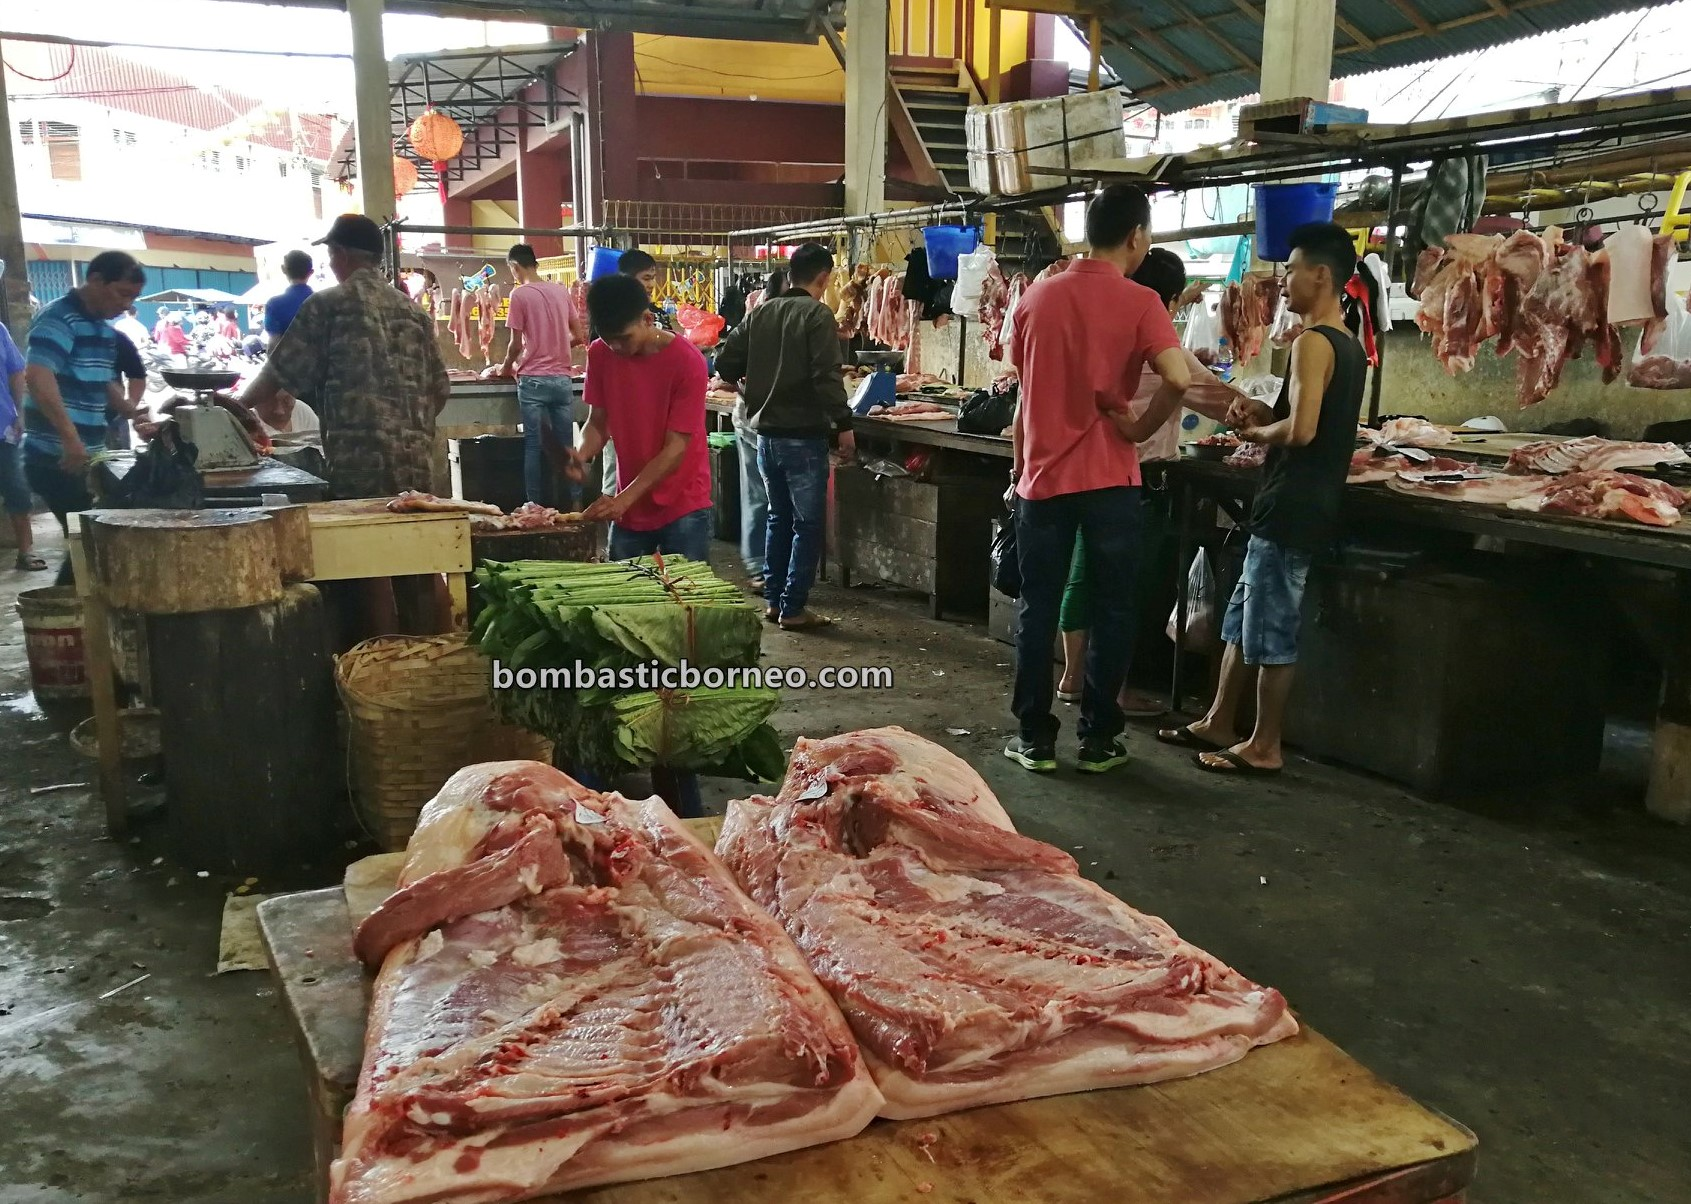 Local Market, authentic, traditional, Kota Amoi, seafood, meat, Tourism, tourist attraction, travel guide, Cross Border, Borneo, 跨境婆罗洲游踪, 印尼西加里曼丹, 山口洋早市